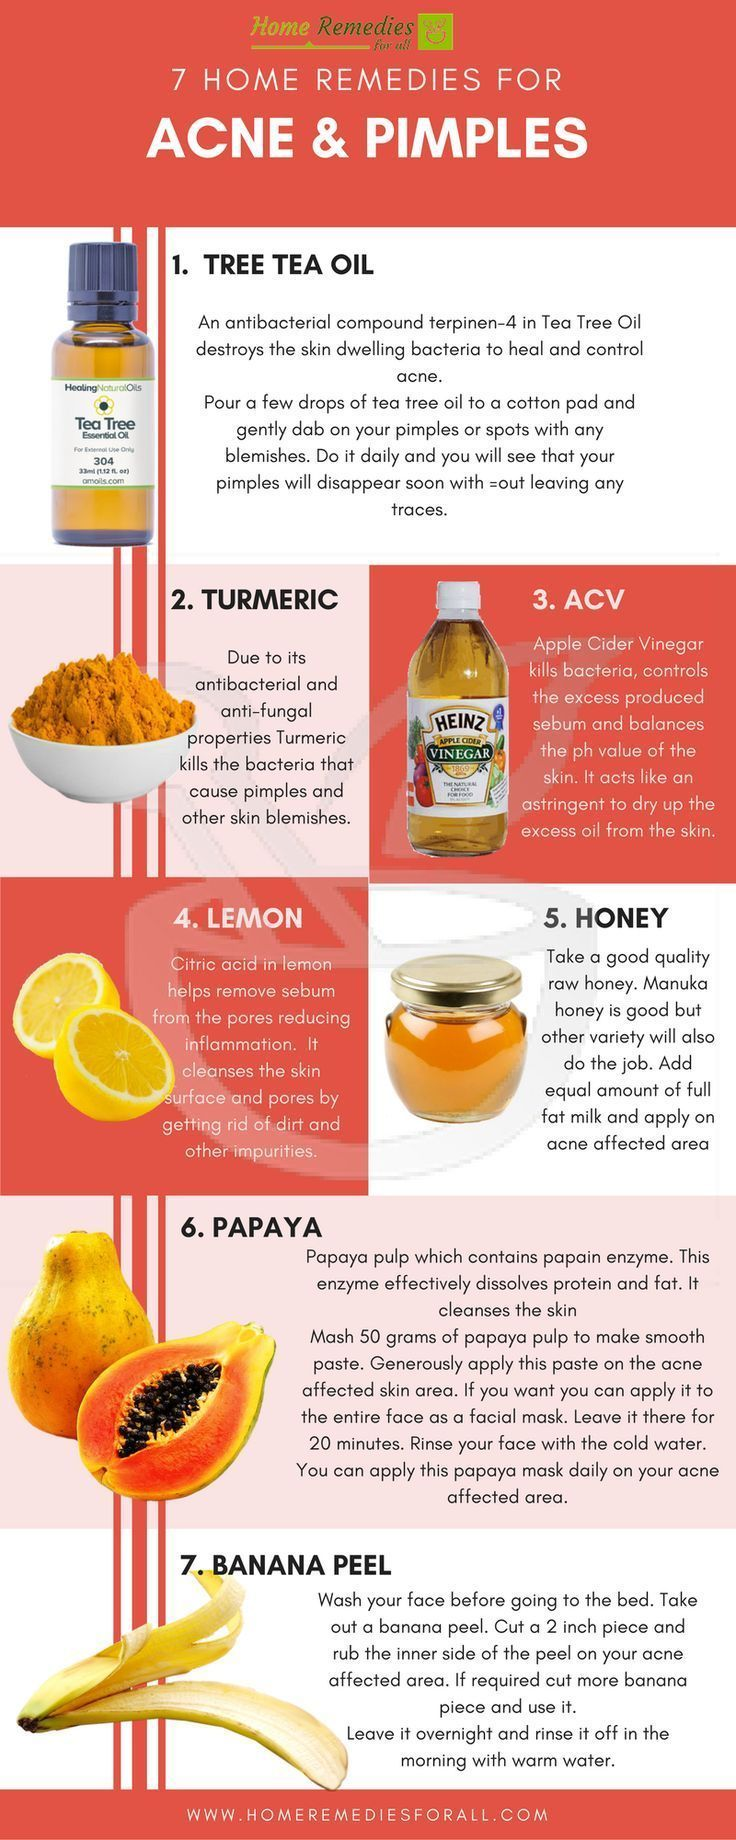 Effective and natural remedy for acne